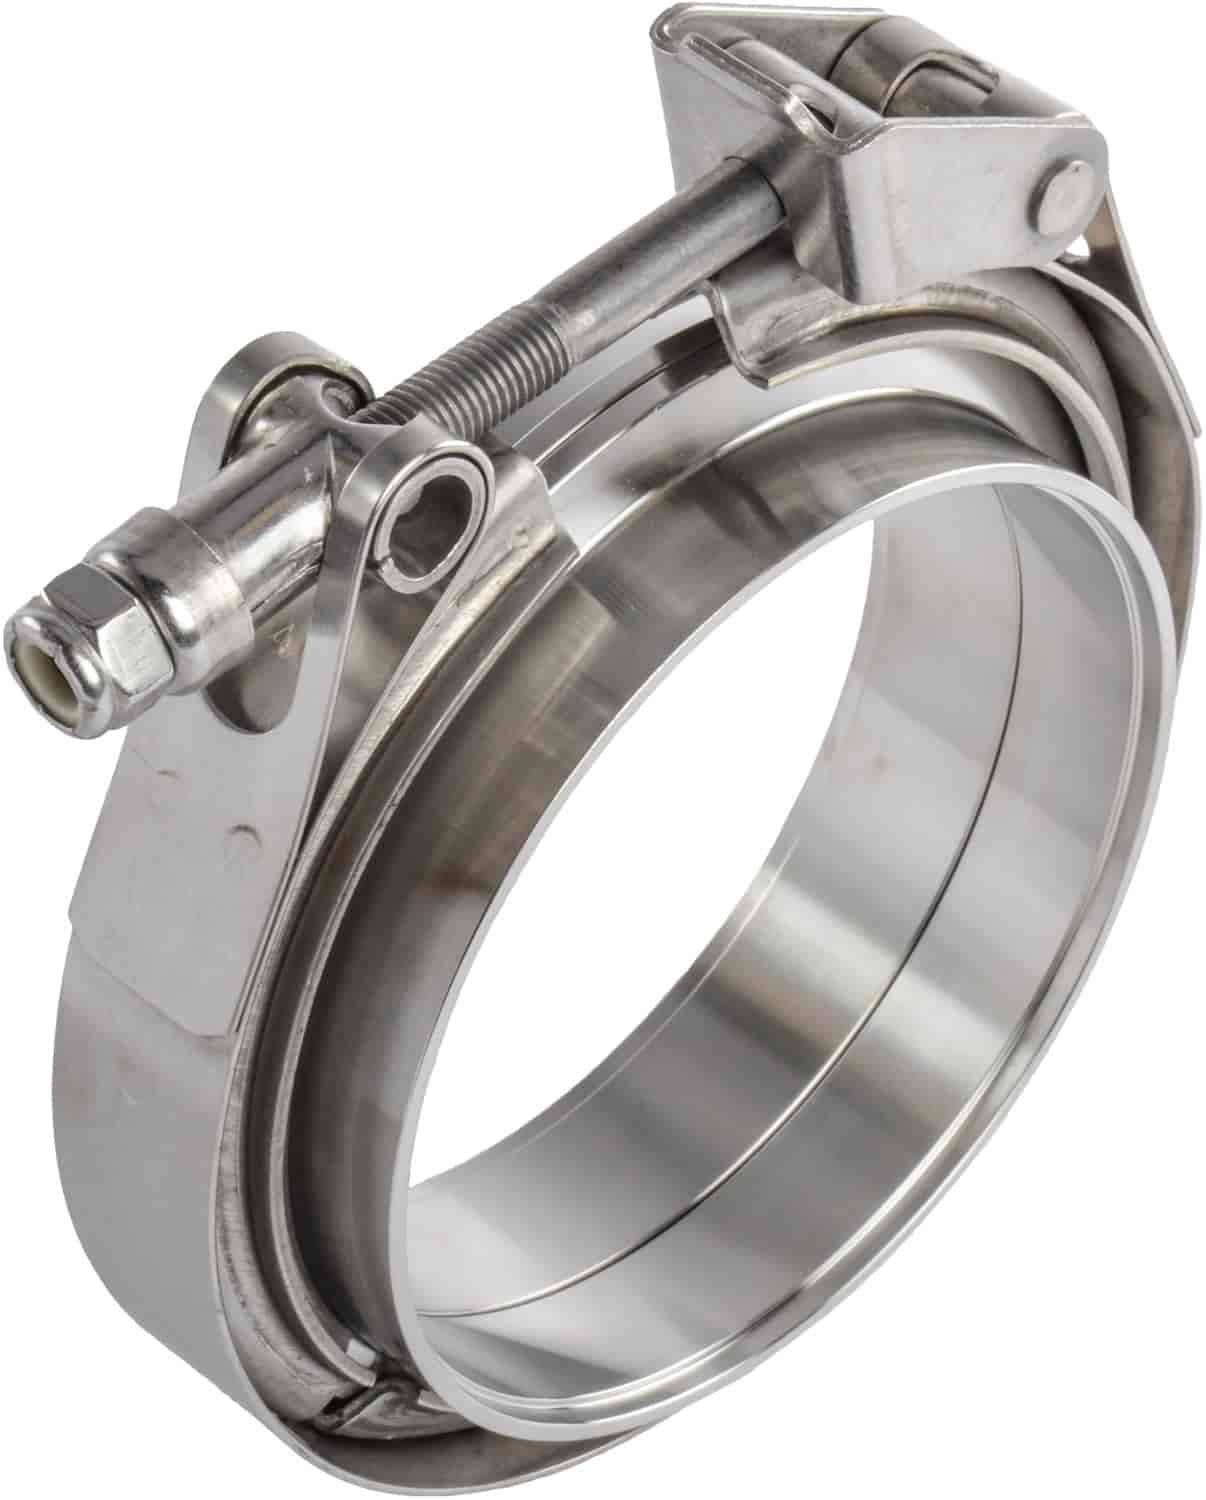 JEGS 30858 Replacement Quick Release V-Band Clamp 2.5/""